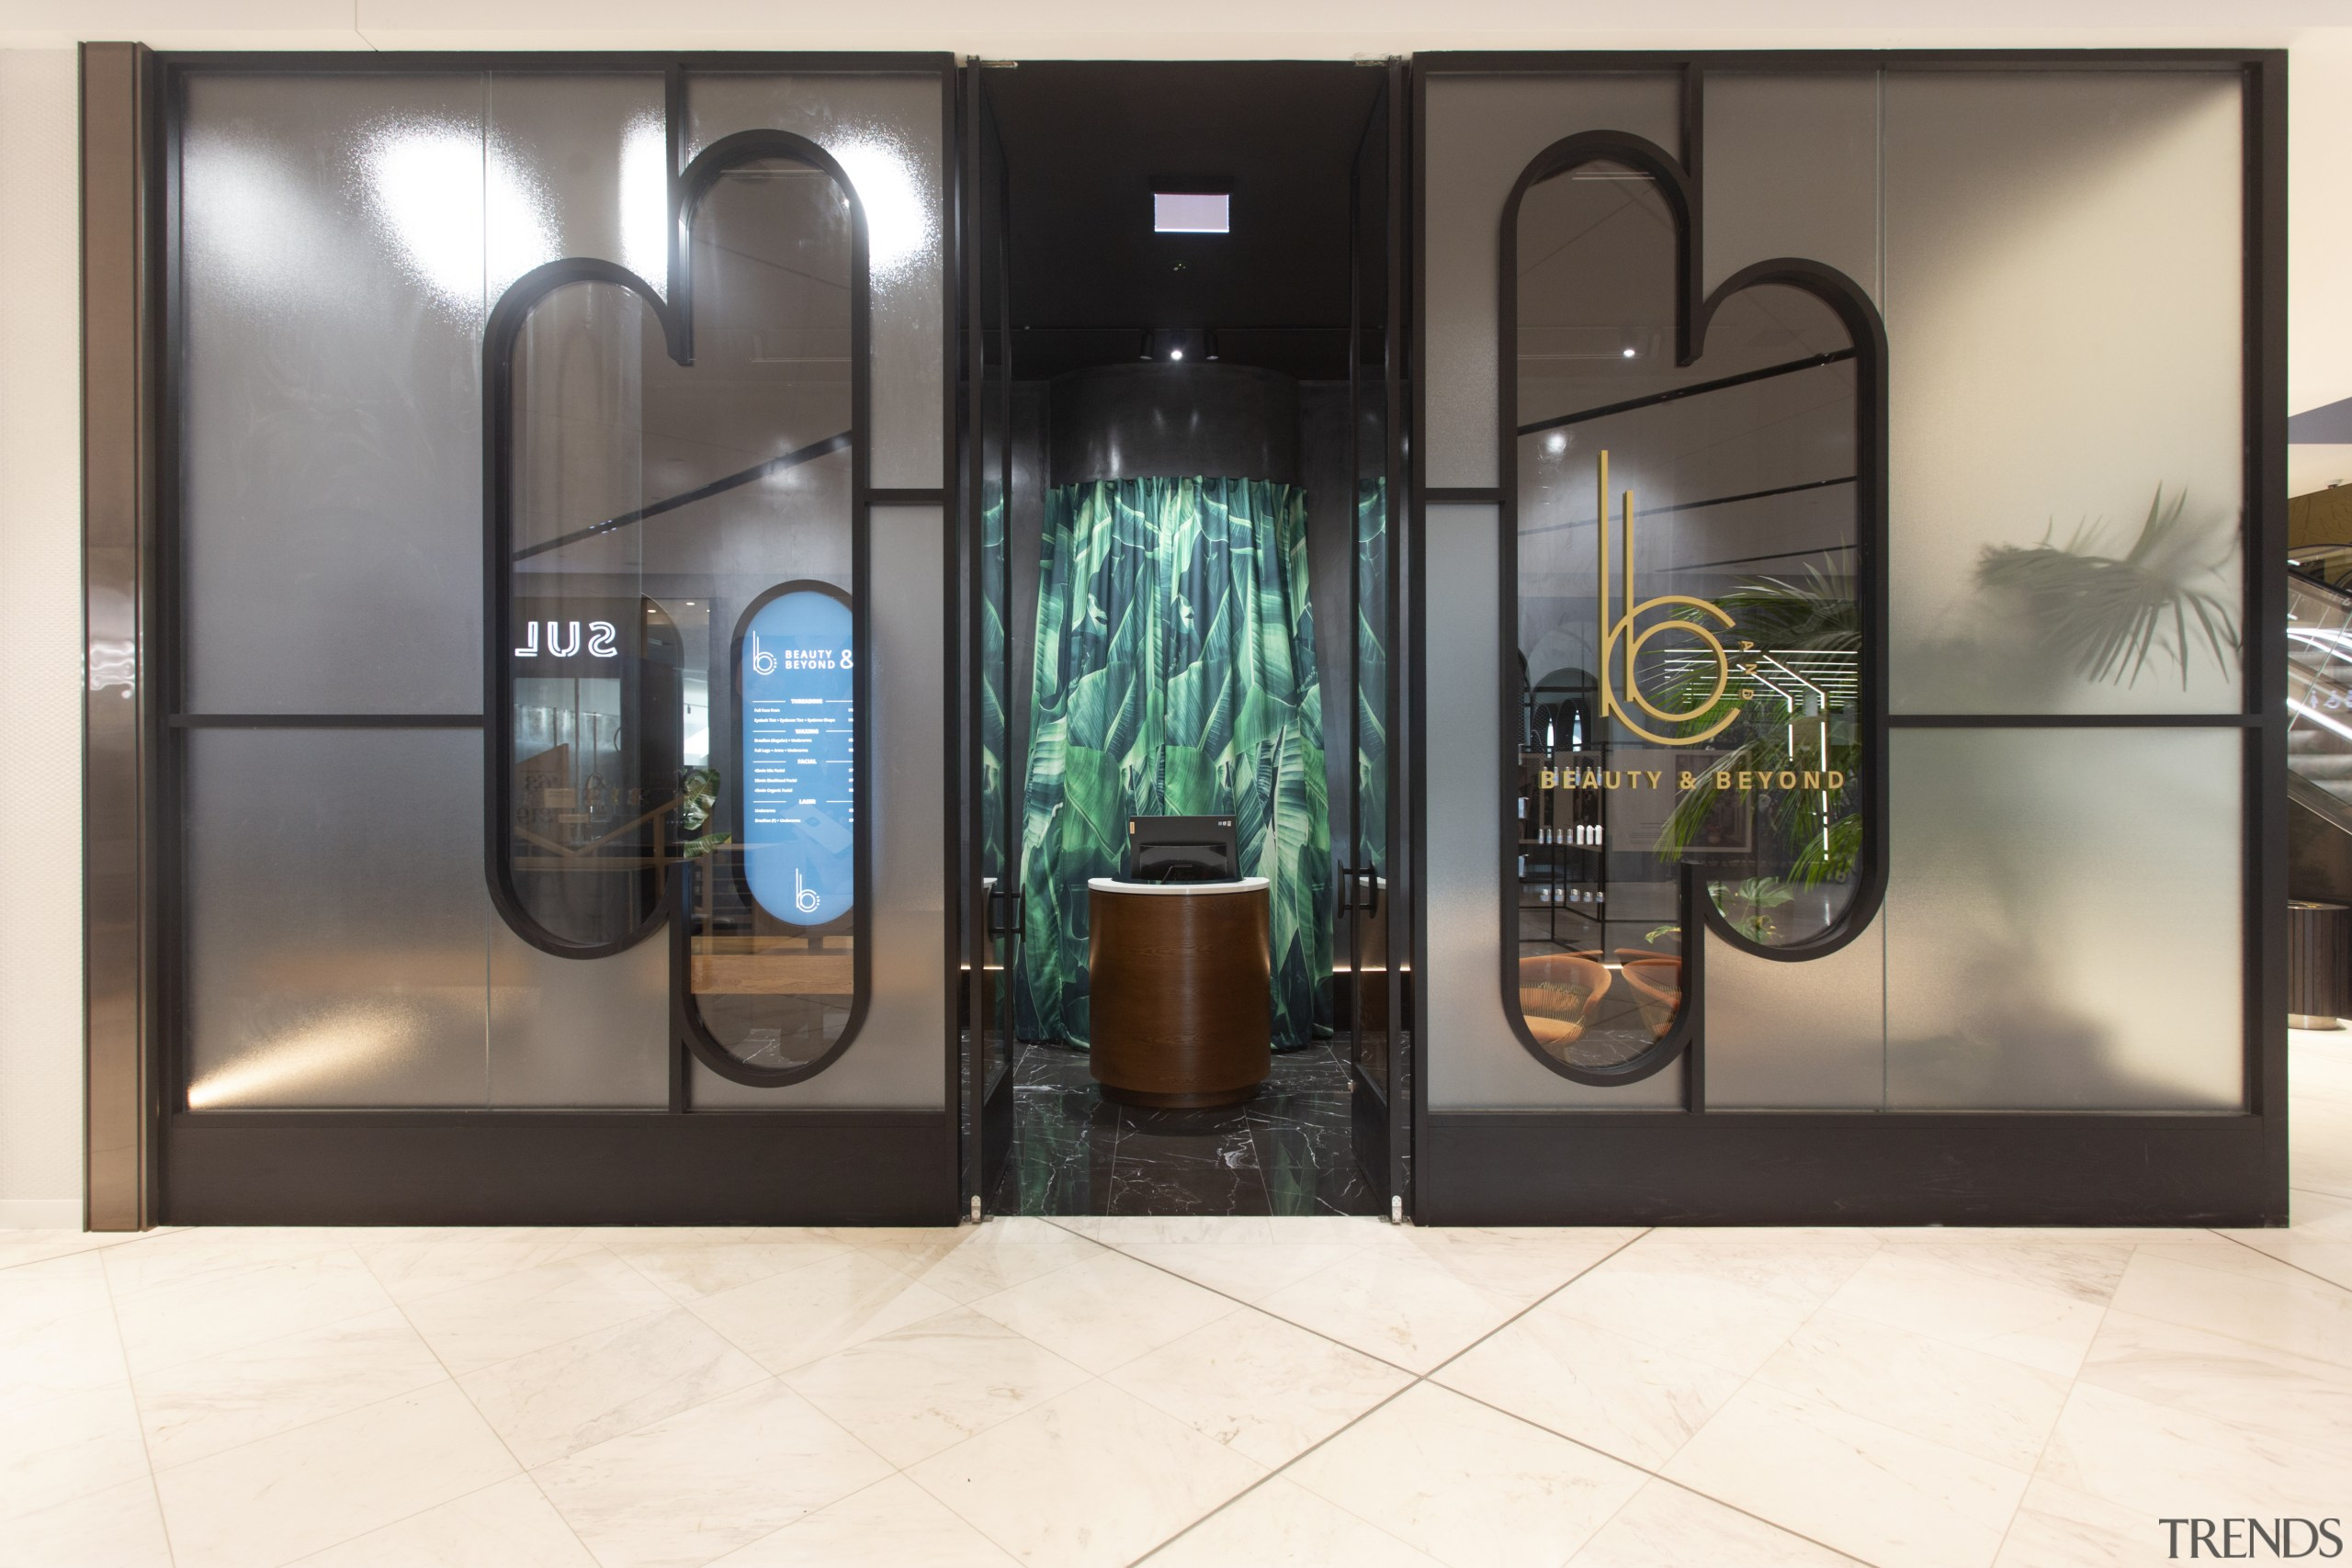 The fit-out emanates a sense of drama before door, furniture, glass, interior design, iron, metal, room, white, black, gray